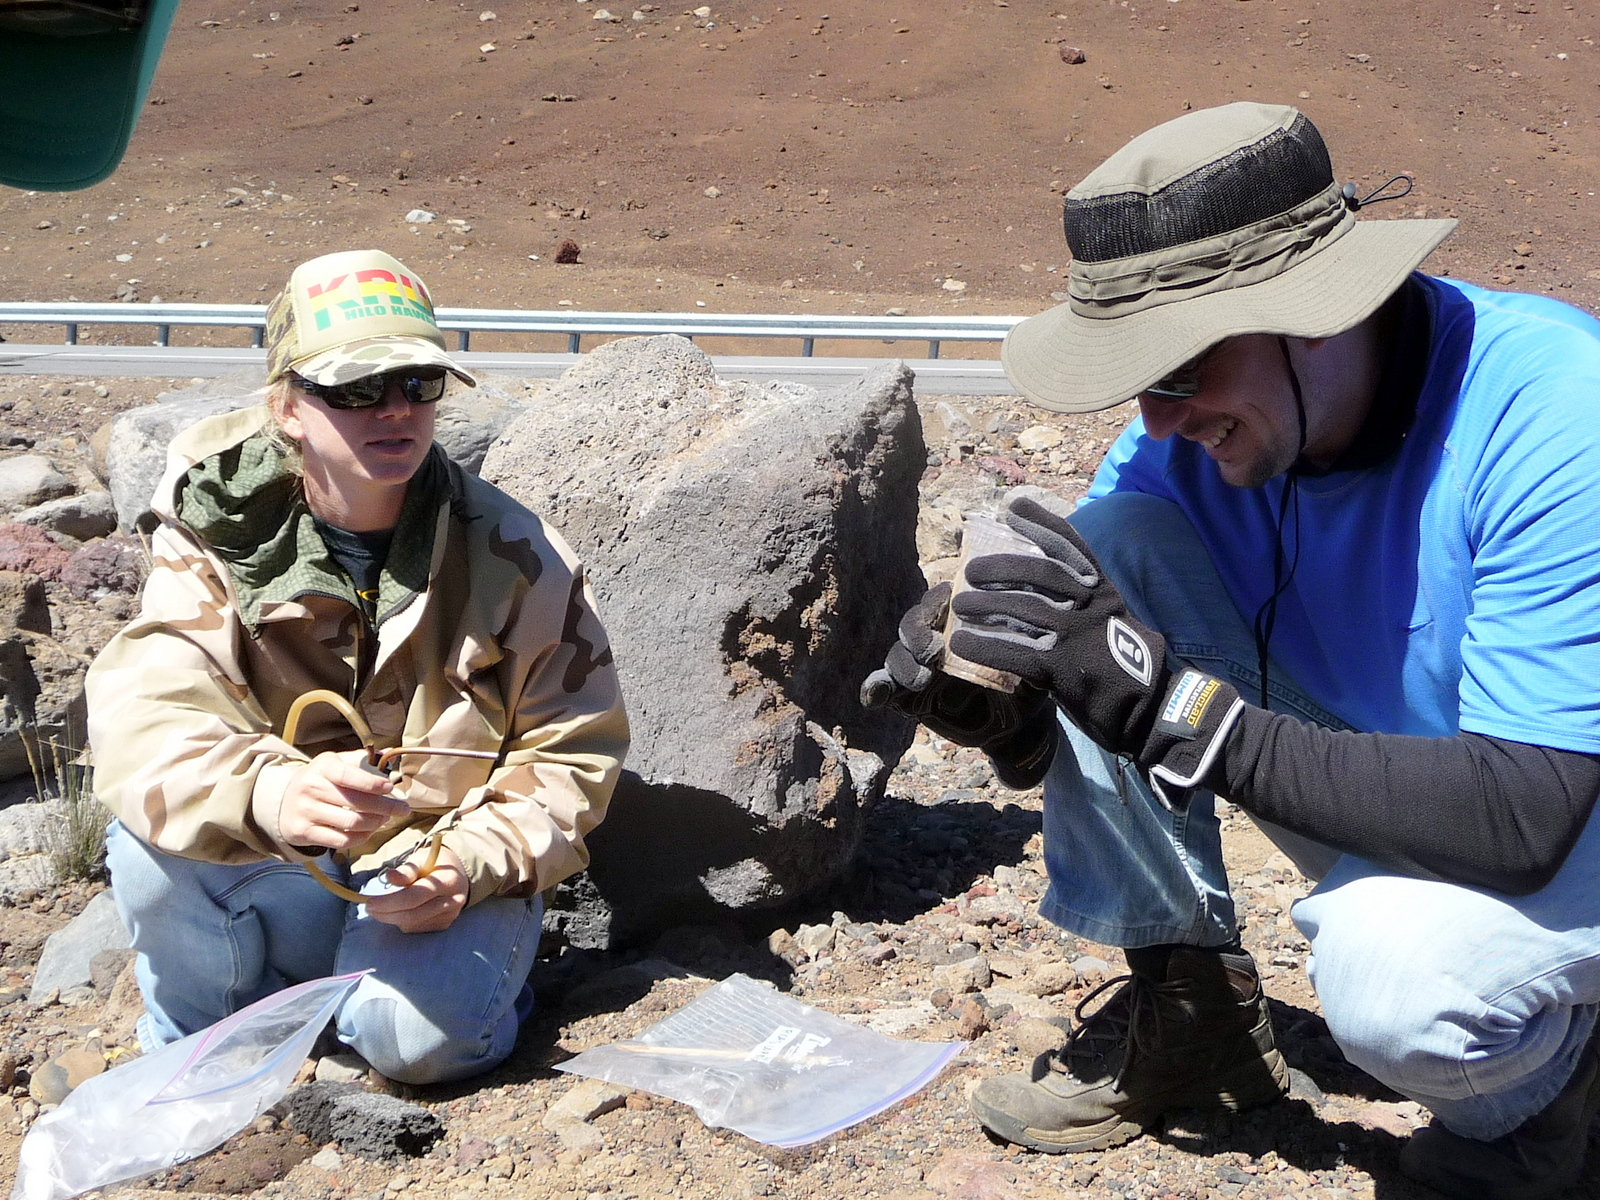 Jessica and Jesse kneeling down to collect specimens from the rocky ground.